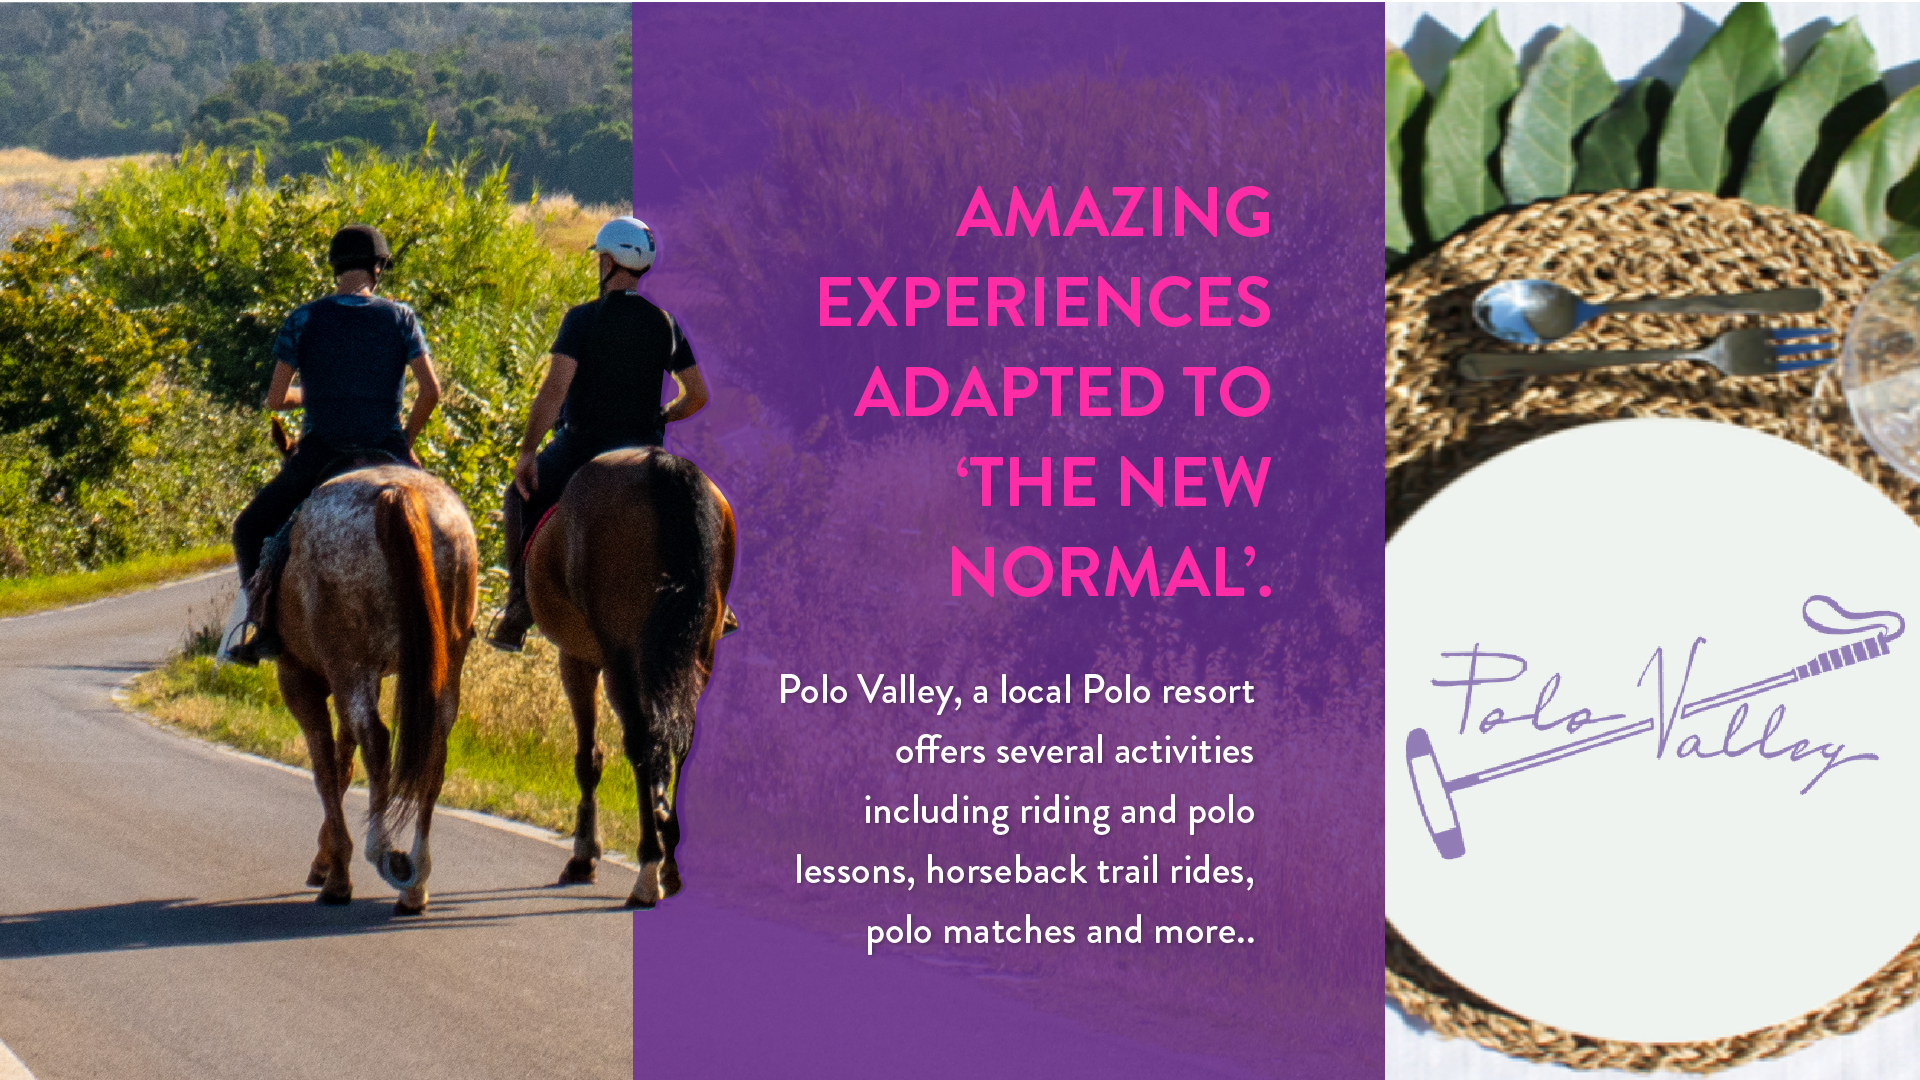 polo-valley-new-experiences-adapted-to-new-normal-noll-sotogrande-blog-may-2020_1